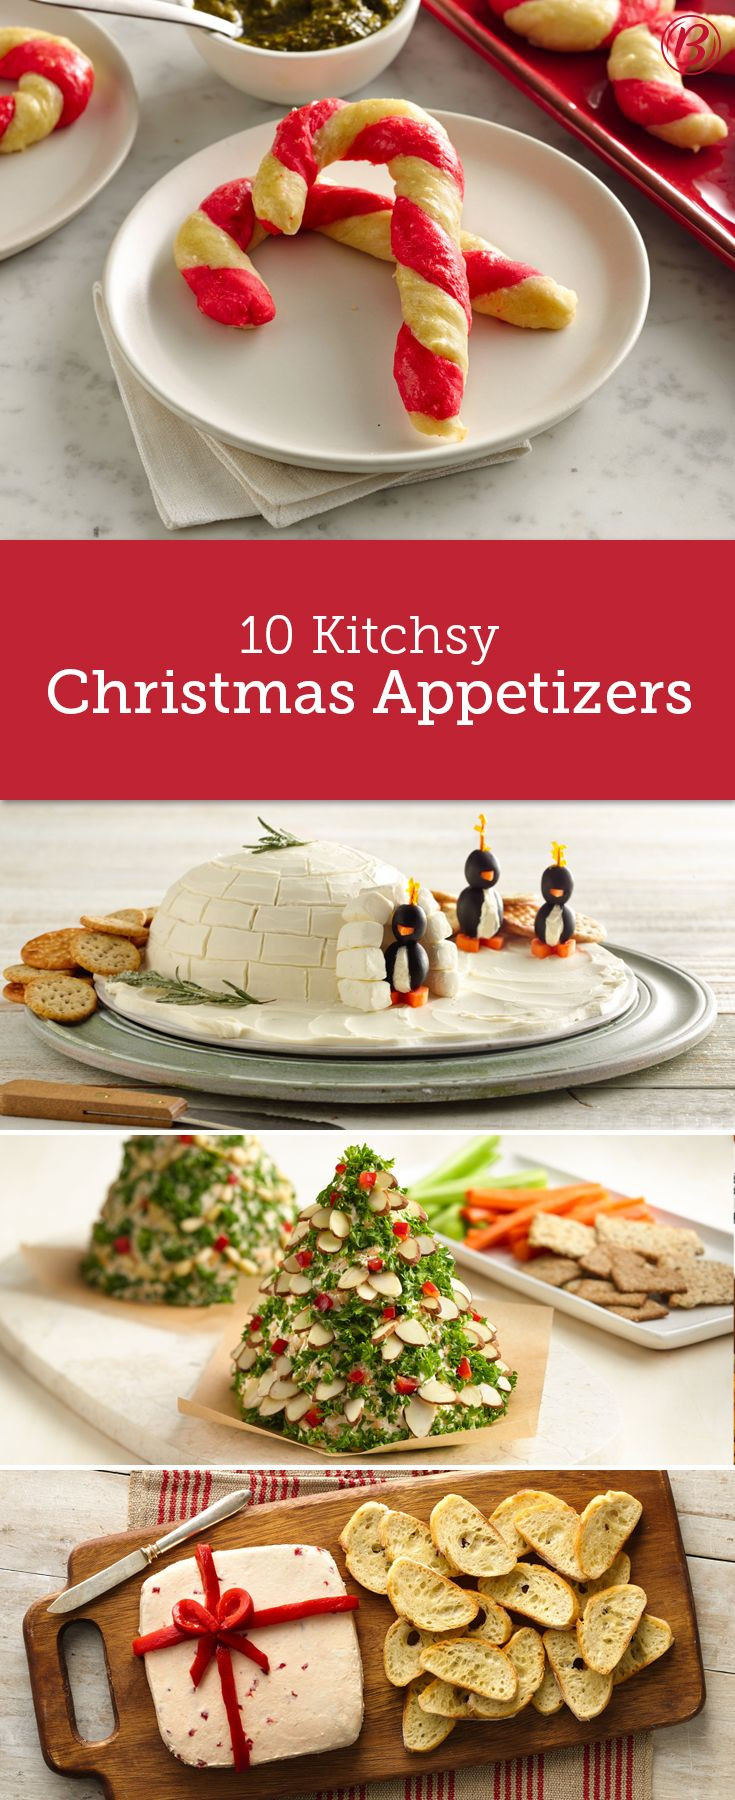 Christmas Party Appetizers Pinterest  1000 ideas about Christmas Appetizers on Pinterest